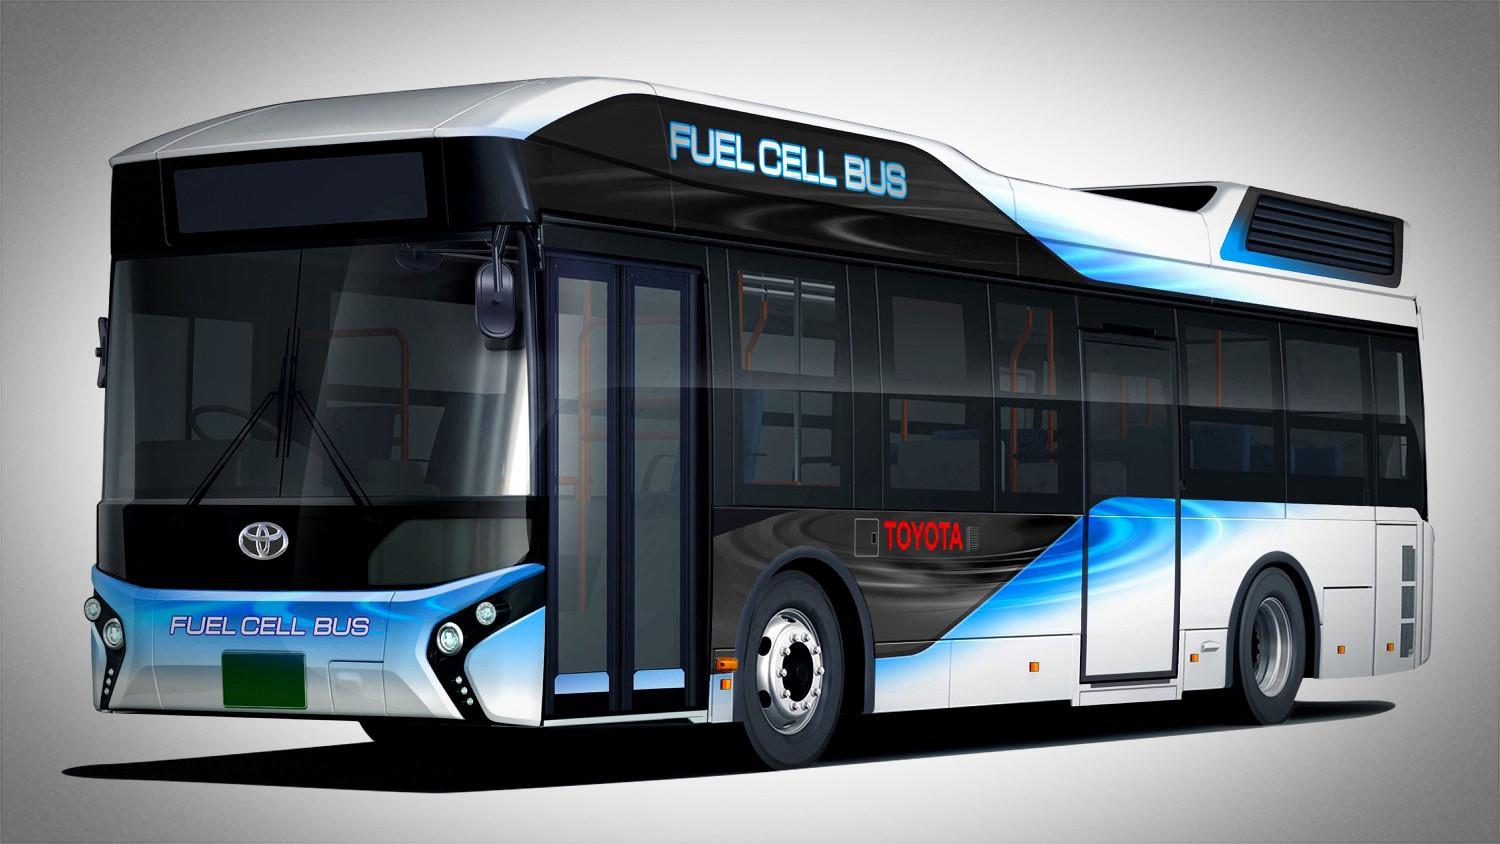 Futuristic tech is not just for cars: Toyota will launch a fuel-cell bus in Japan next year